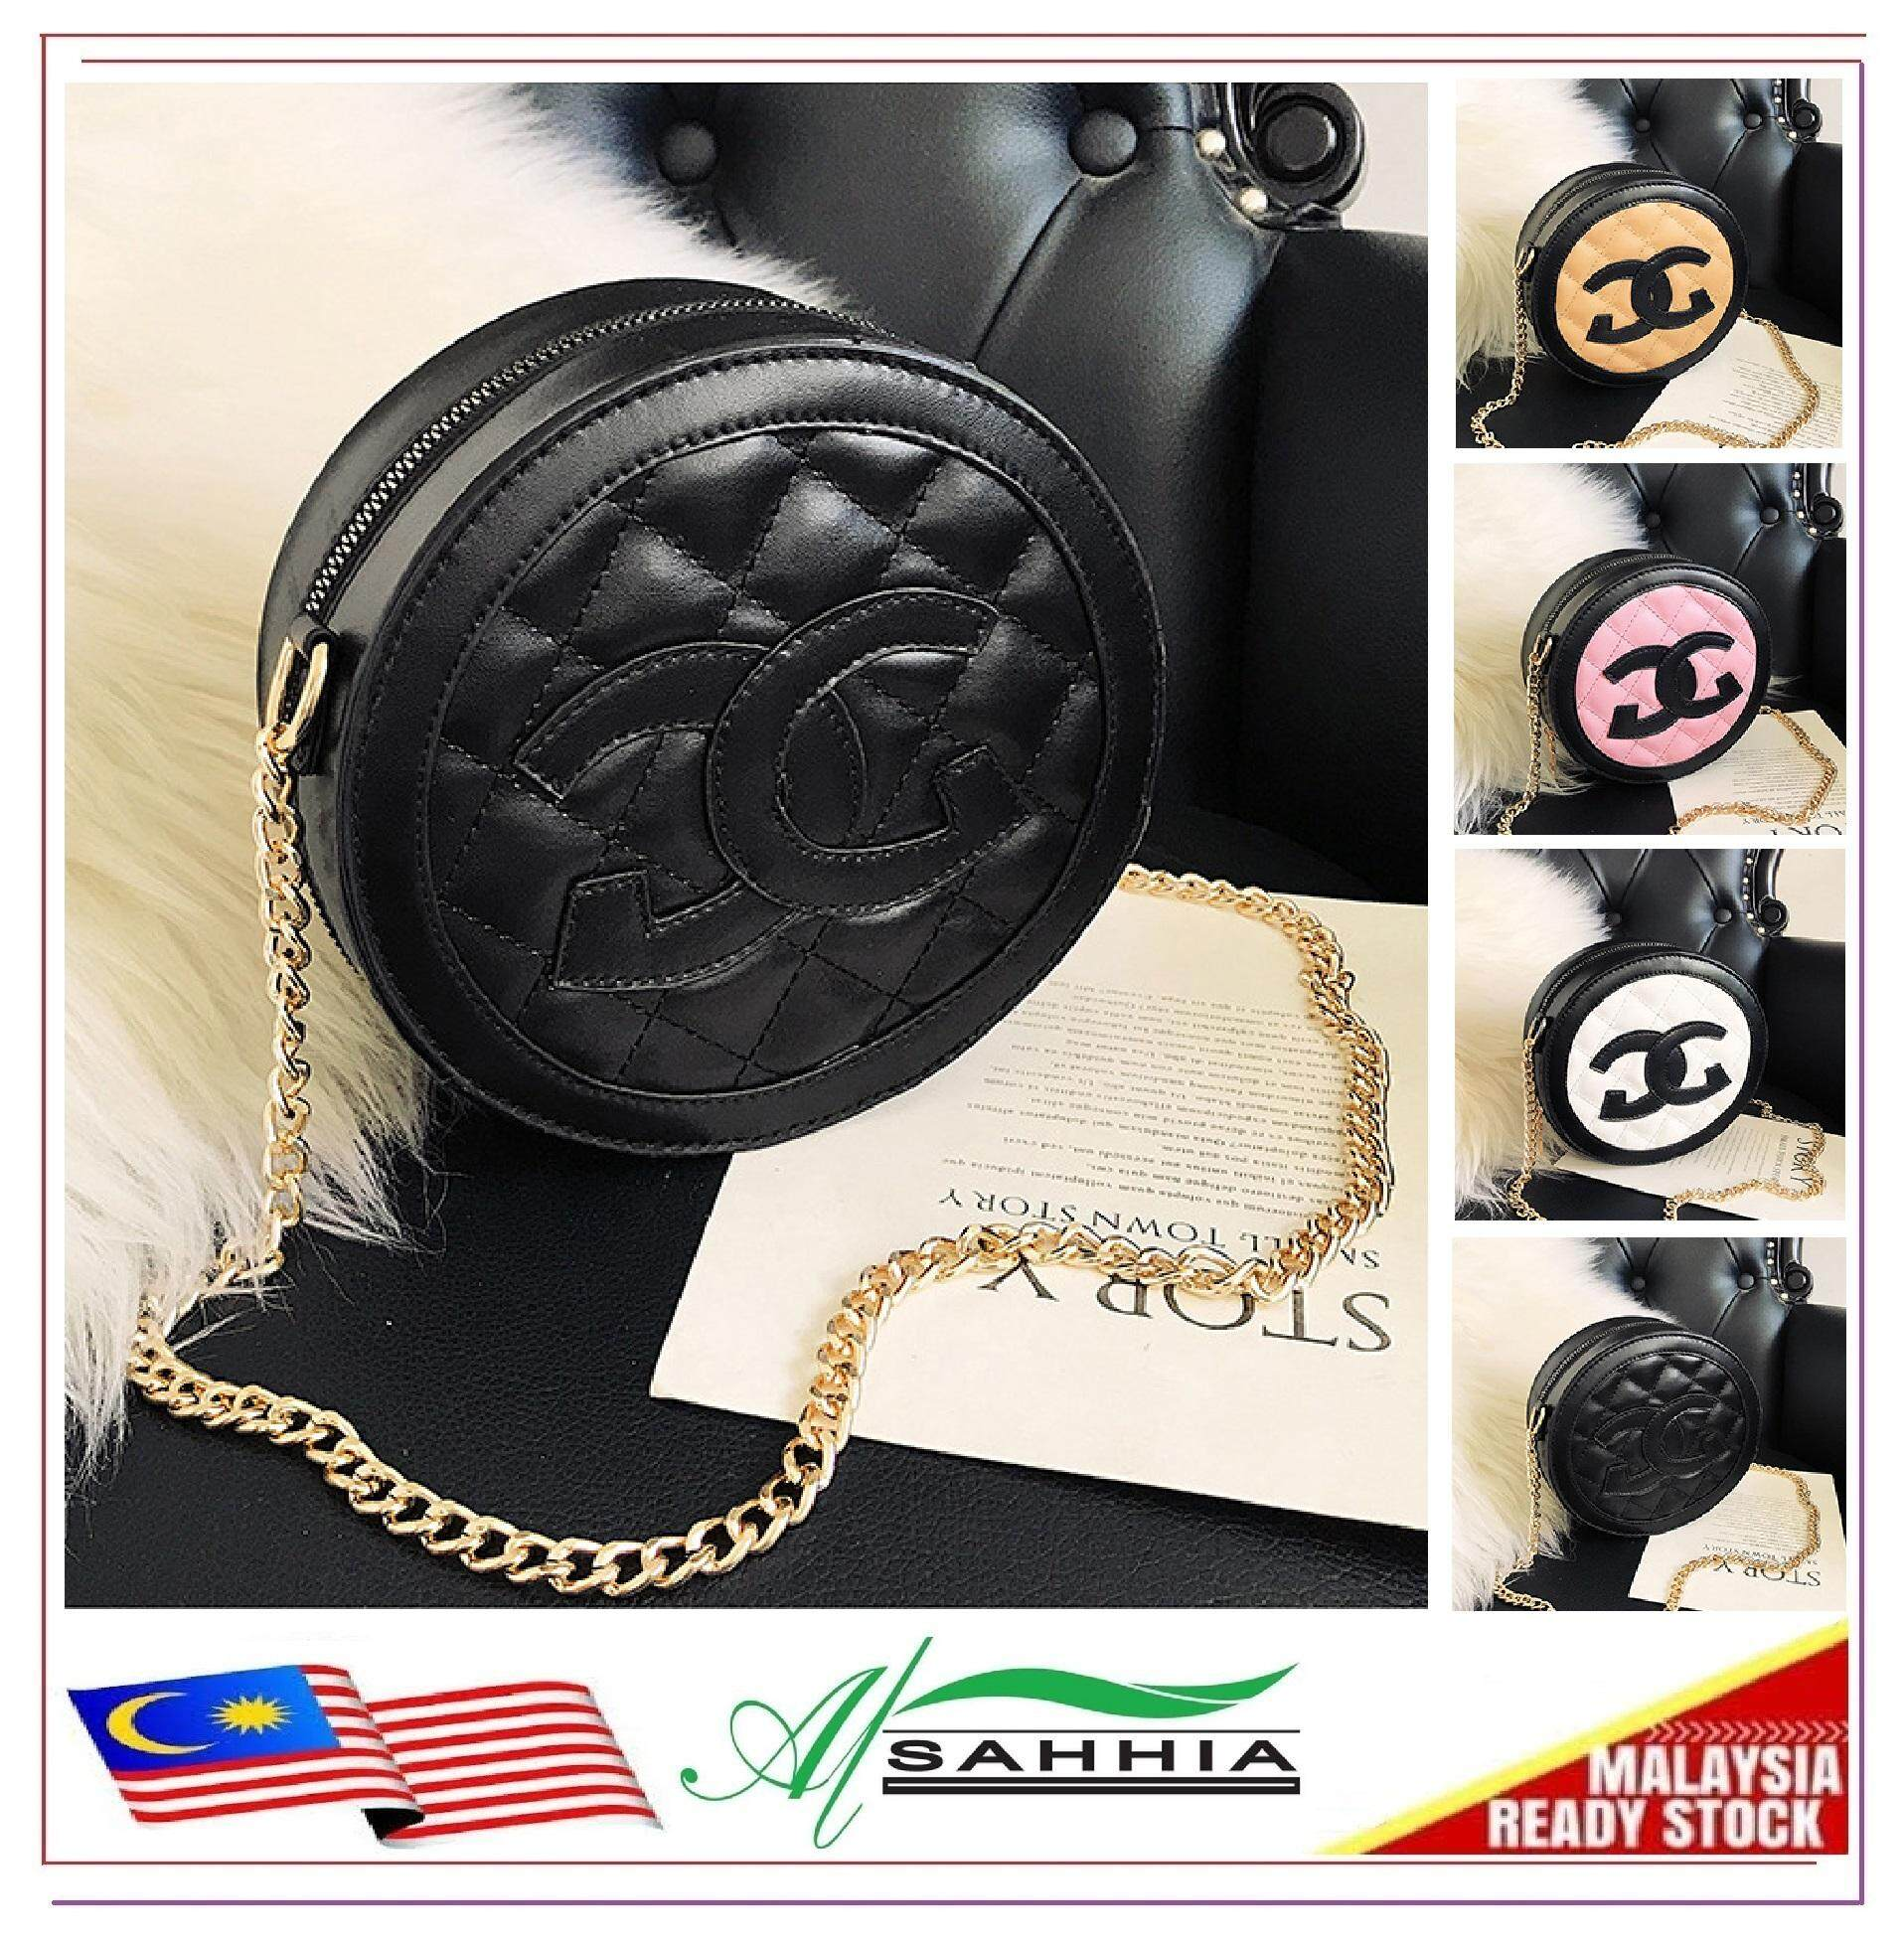 fb5d6f854170 Women Bags - Buy Women Bags at Best Price in Malaysia | www.lazada ...